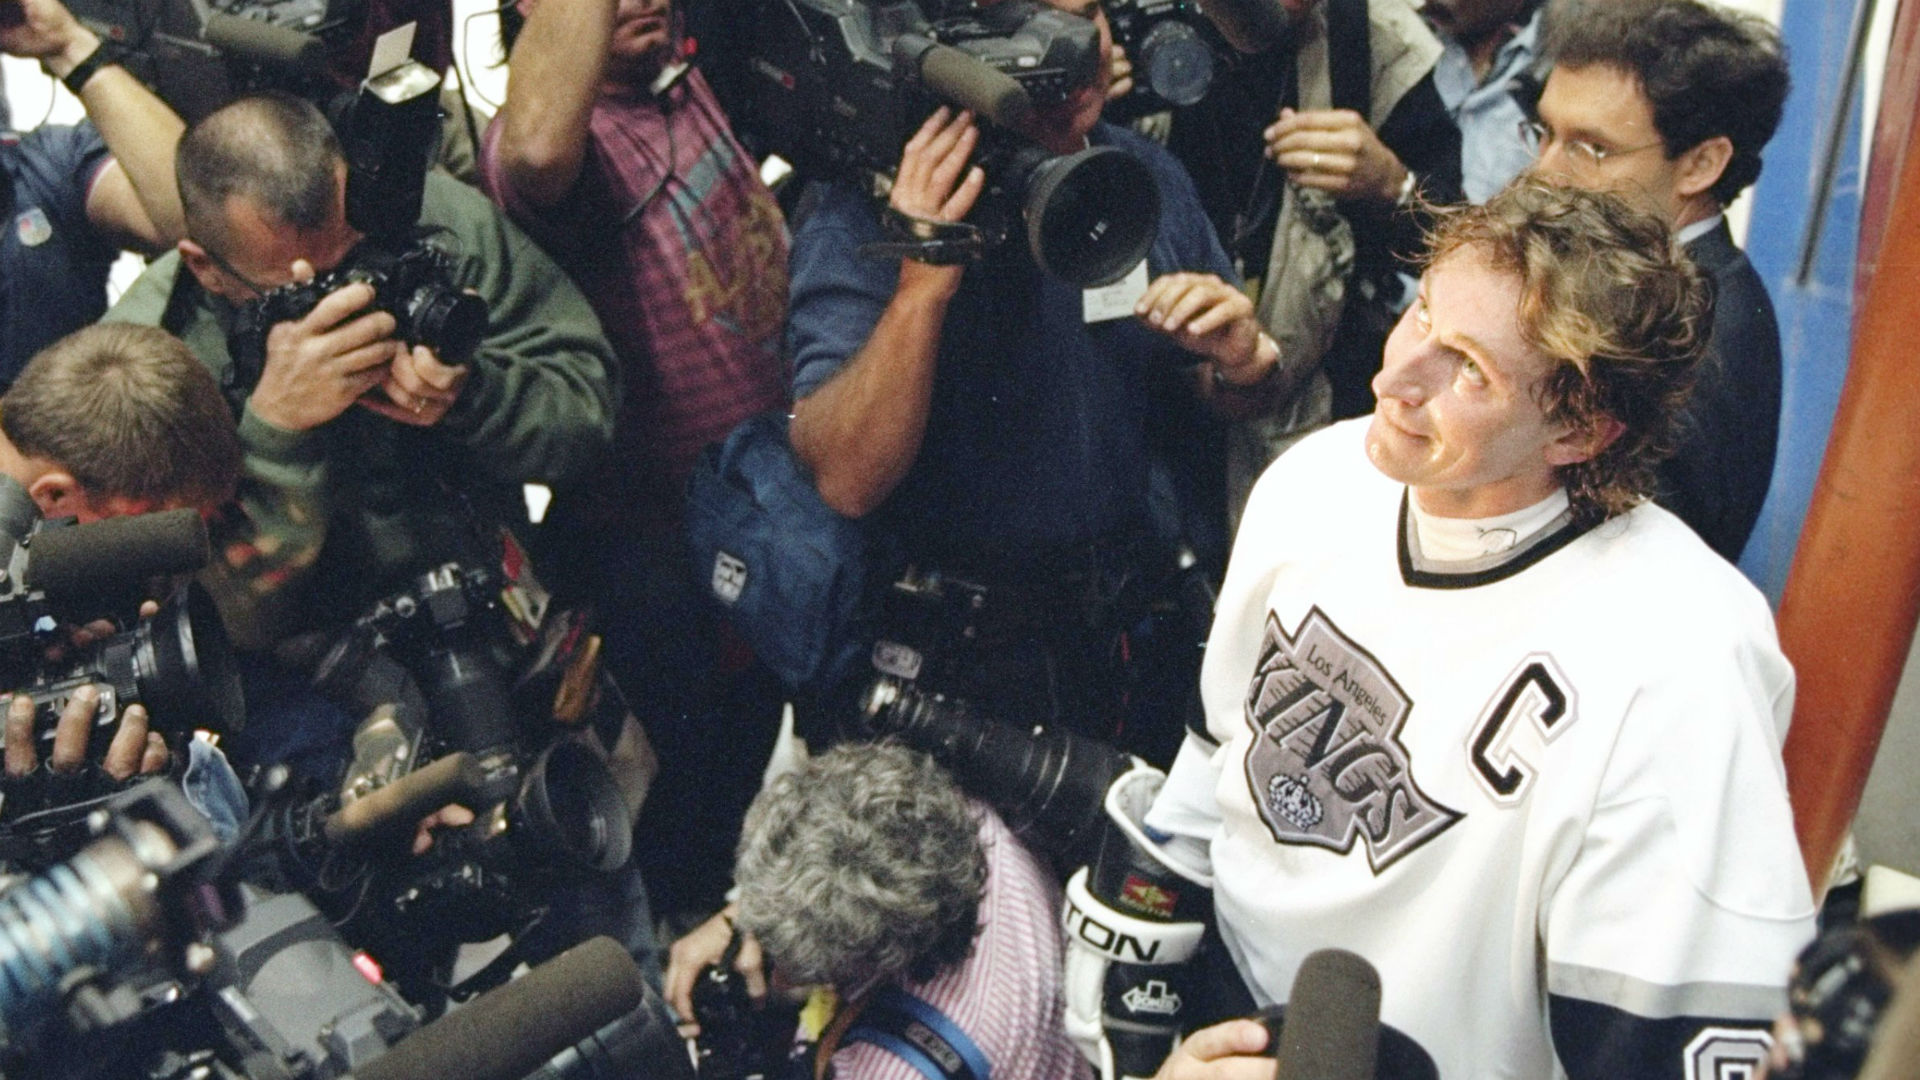 wayne-gretzky-080818-getty-ftr.jpg